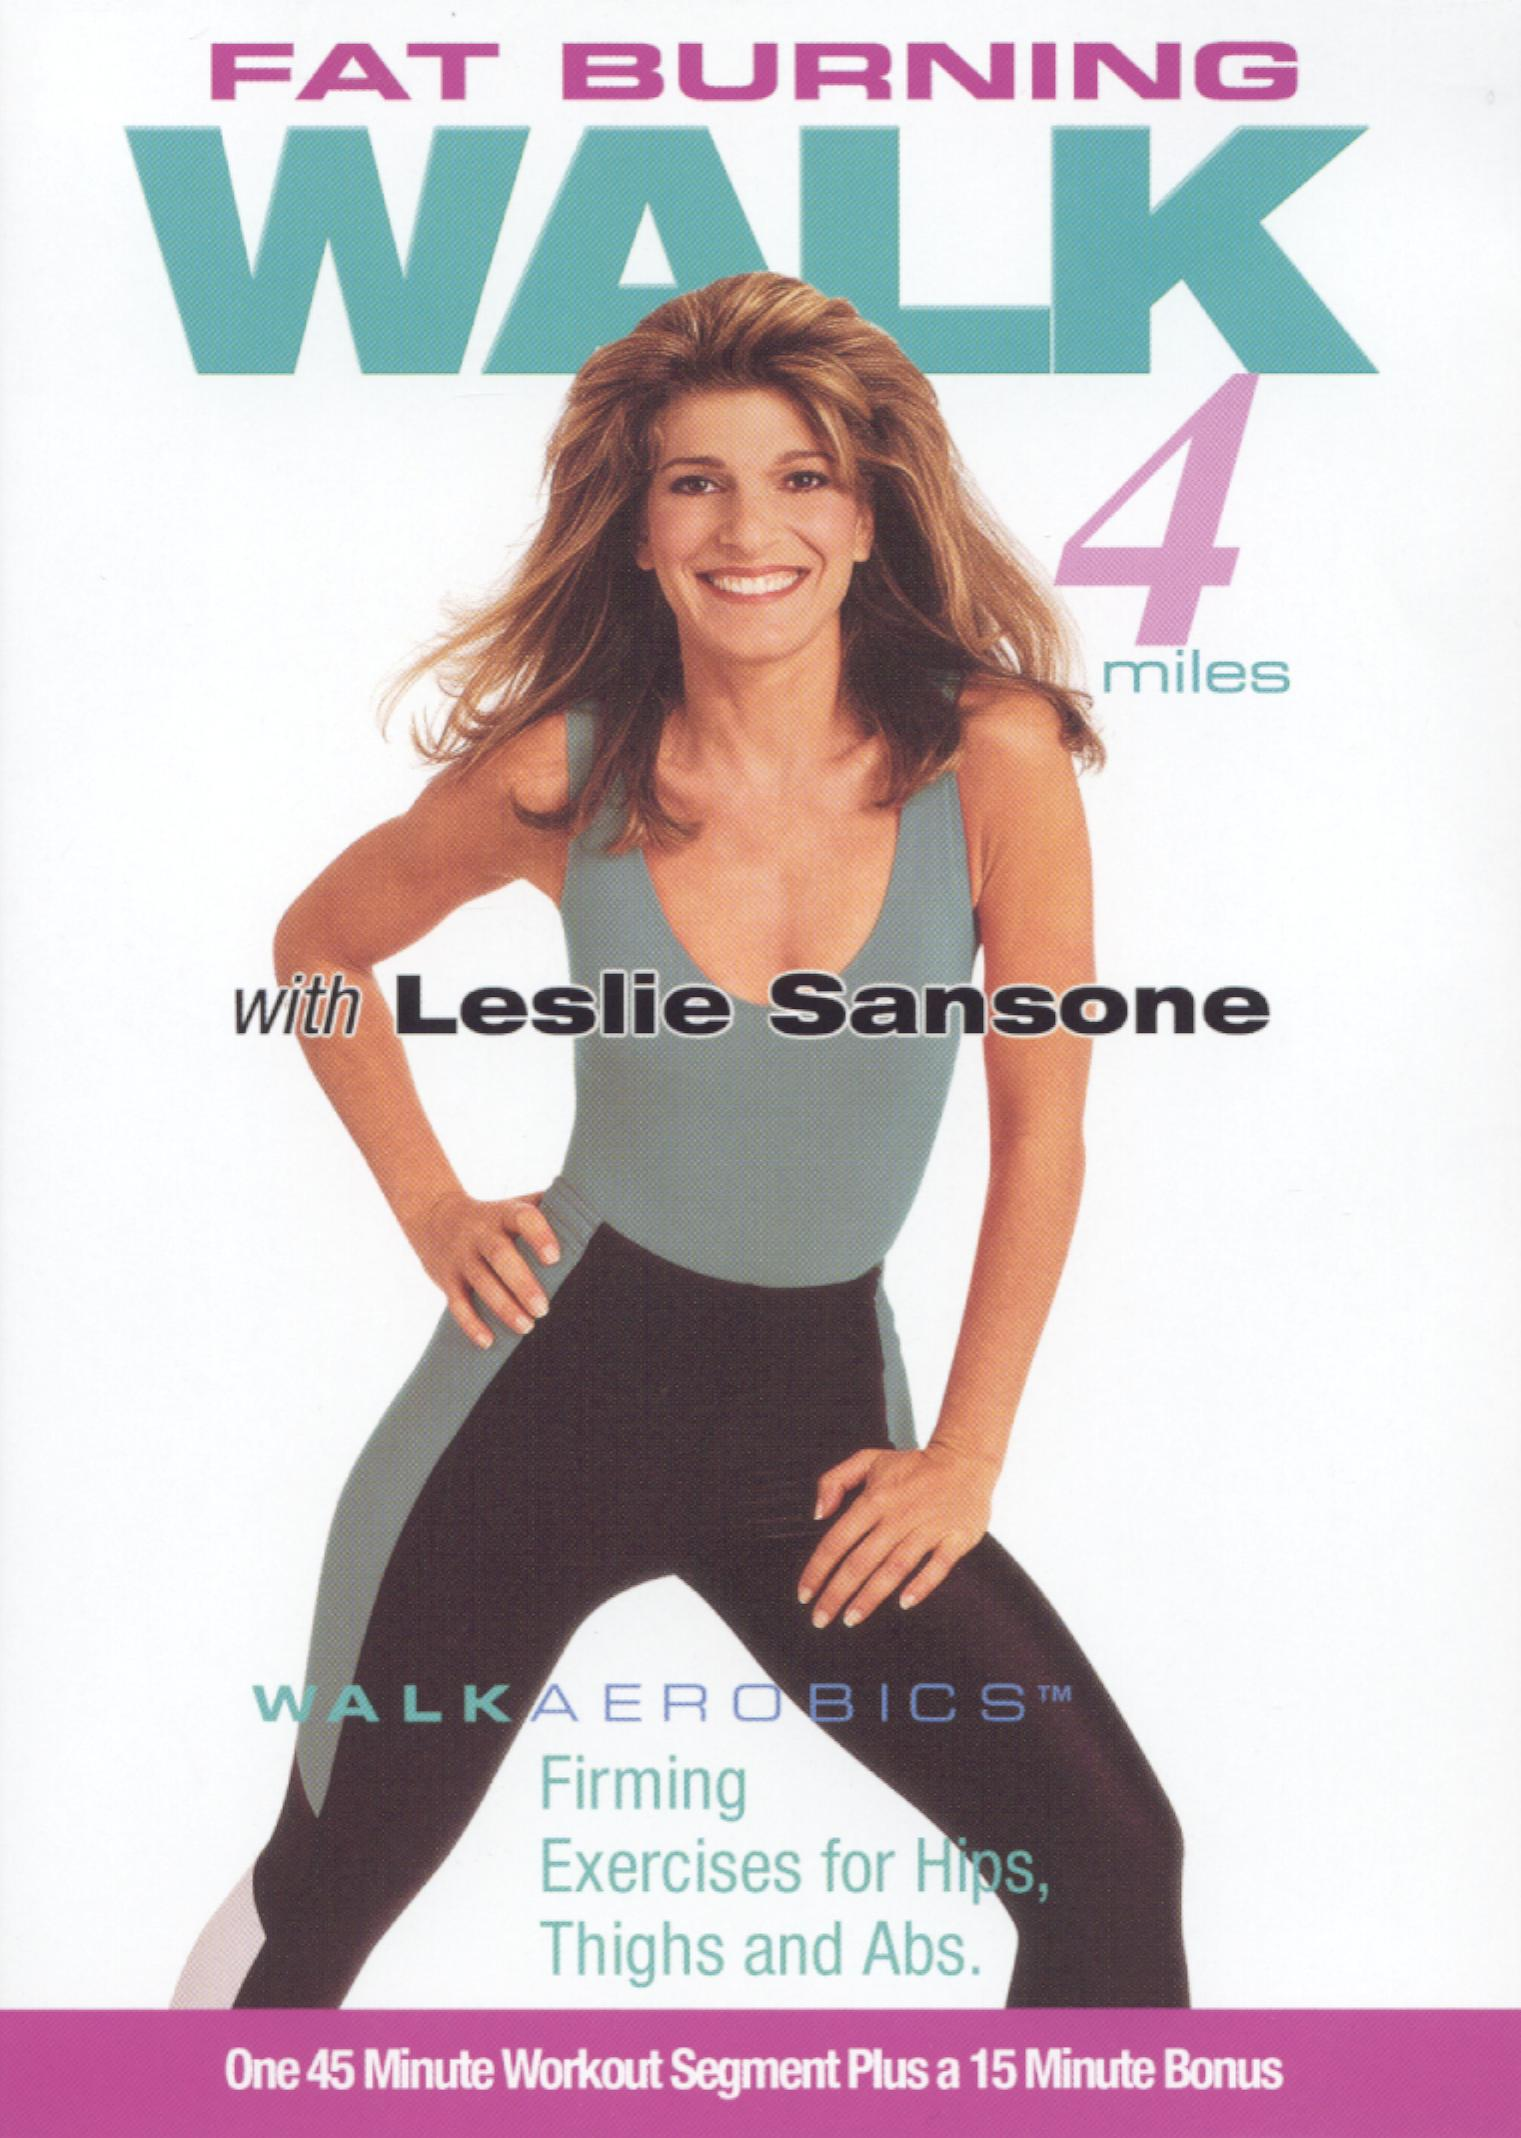 Leslie Sansone: Fat Burning Walk - 4 Miles